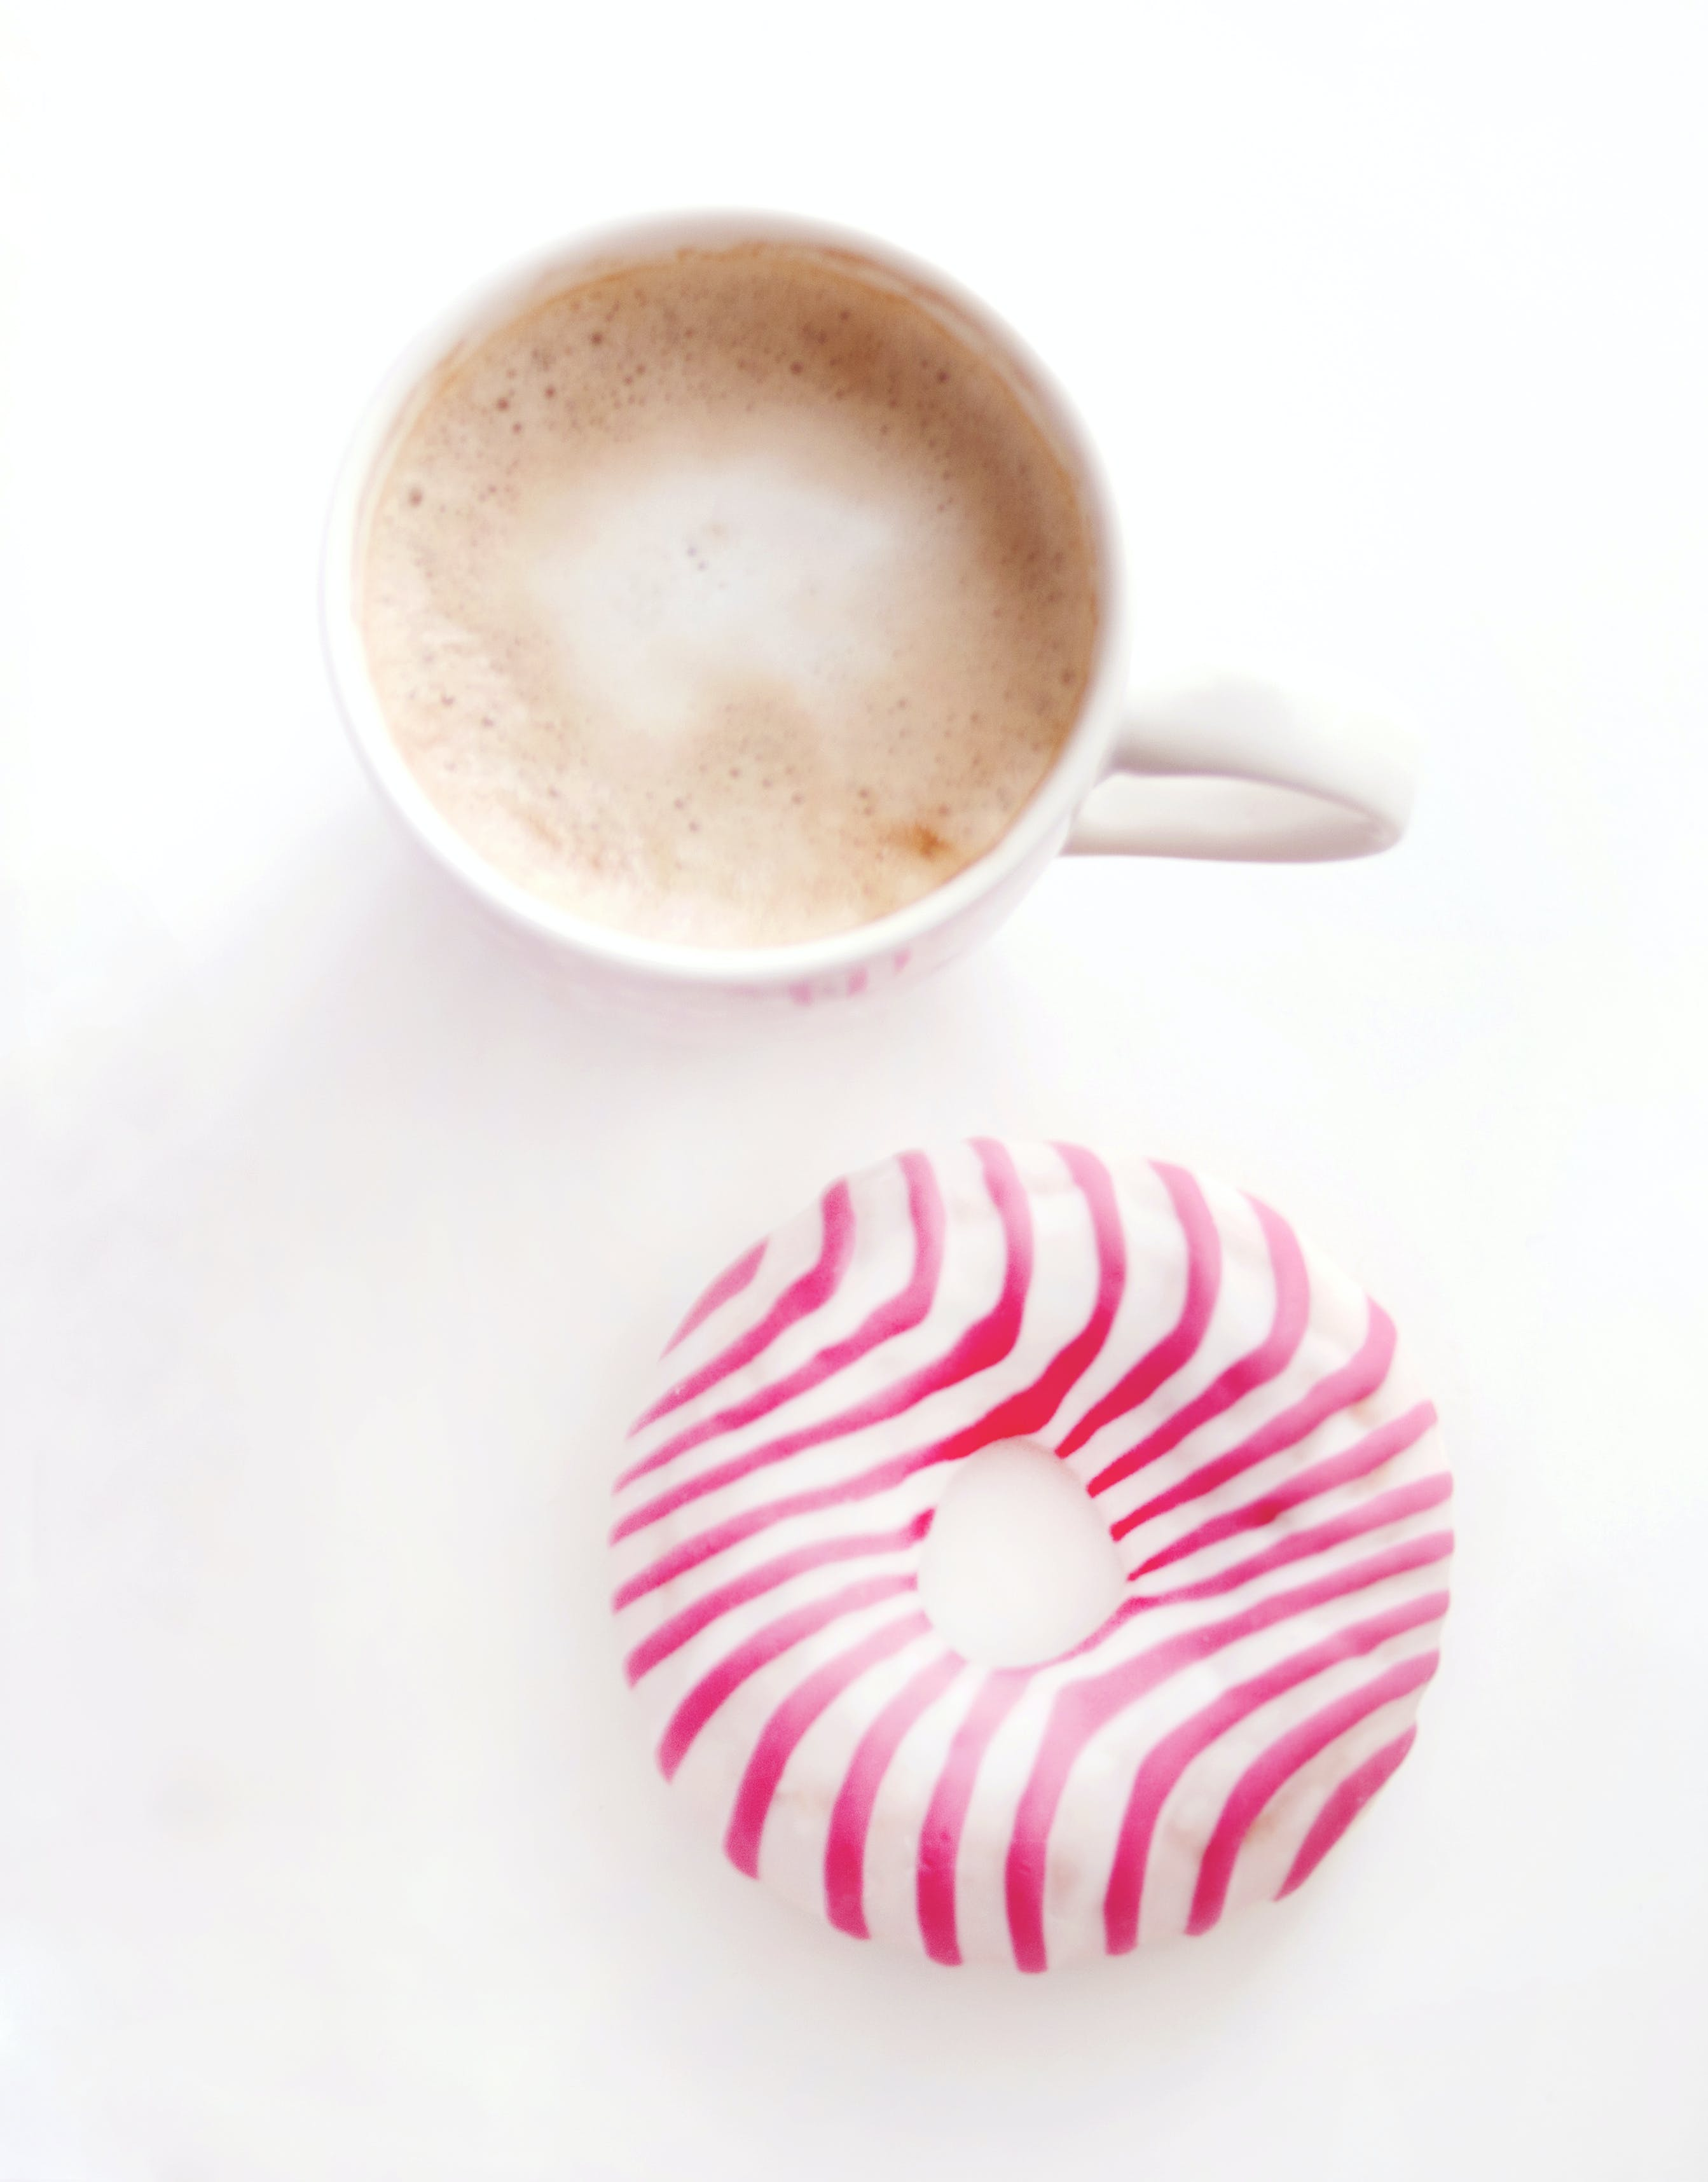 Free stock photo of coffee, cup, donut, pink